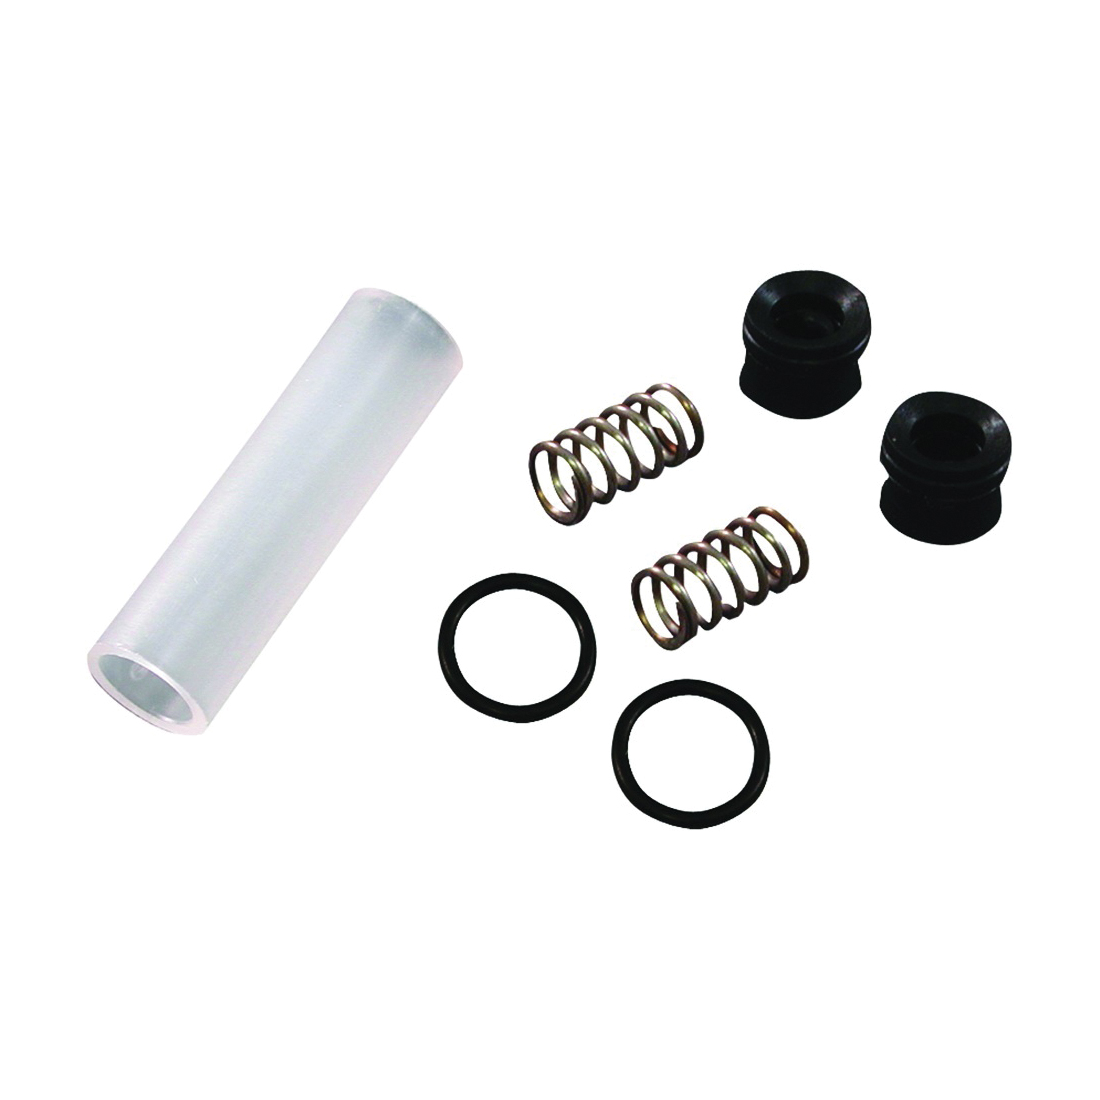 Picture of Danco SR-3 Series 80941 Seat and Spring Assembly, Plastic/Rubber/Stainless Steel